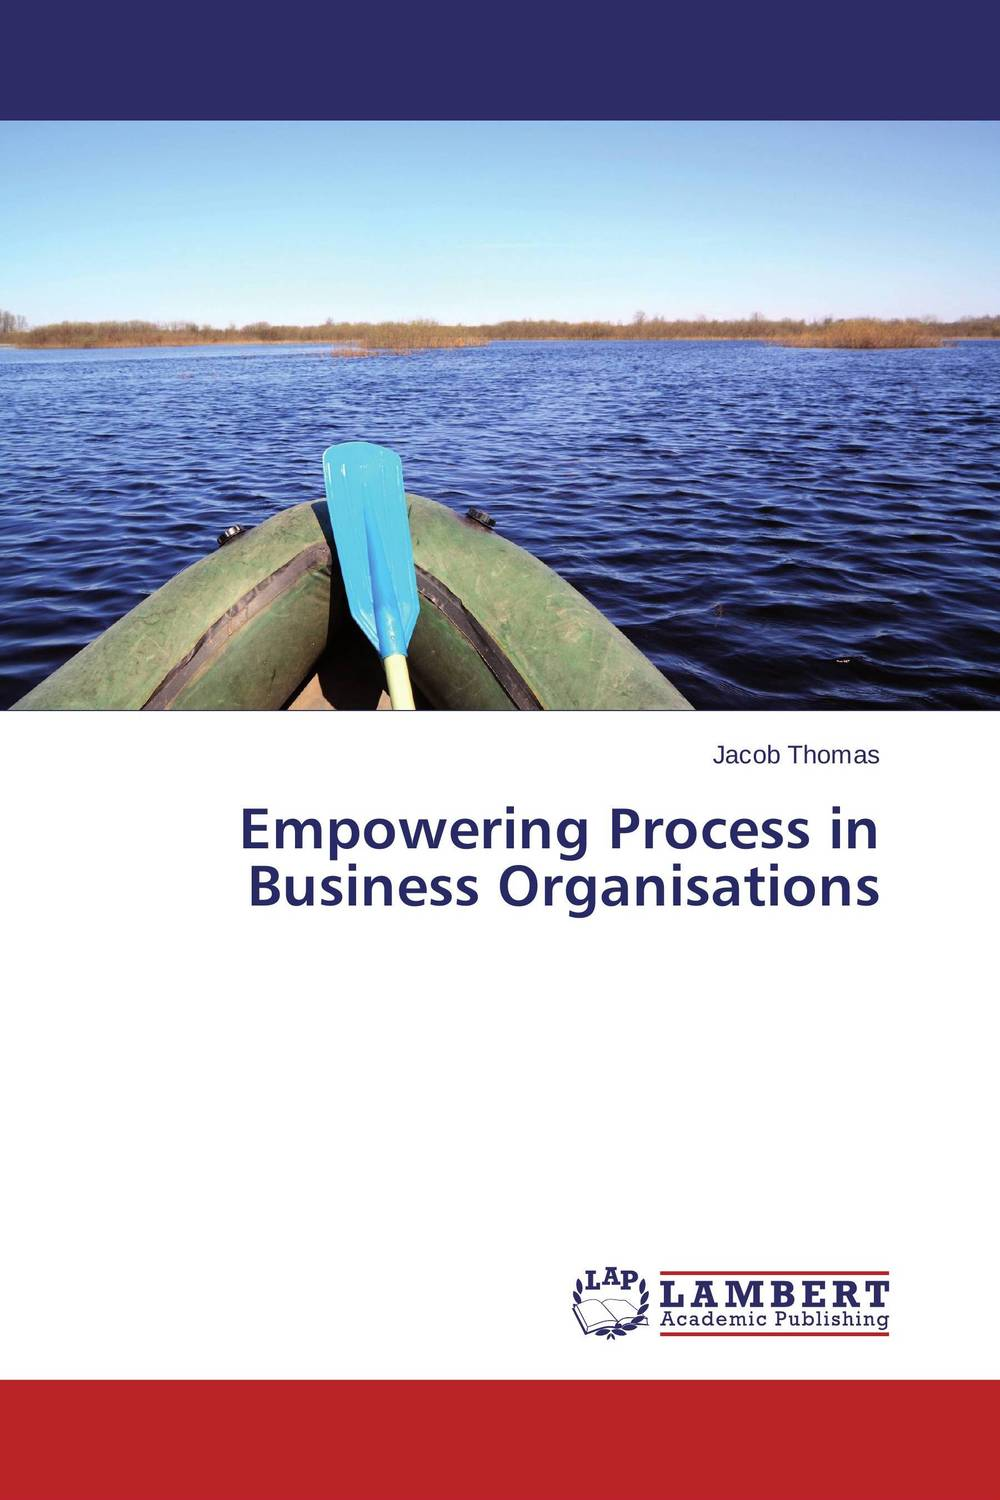 Empowering Process in Business Organisations jacob thomas empowering process in business organisations